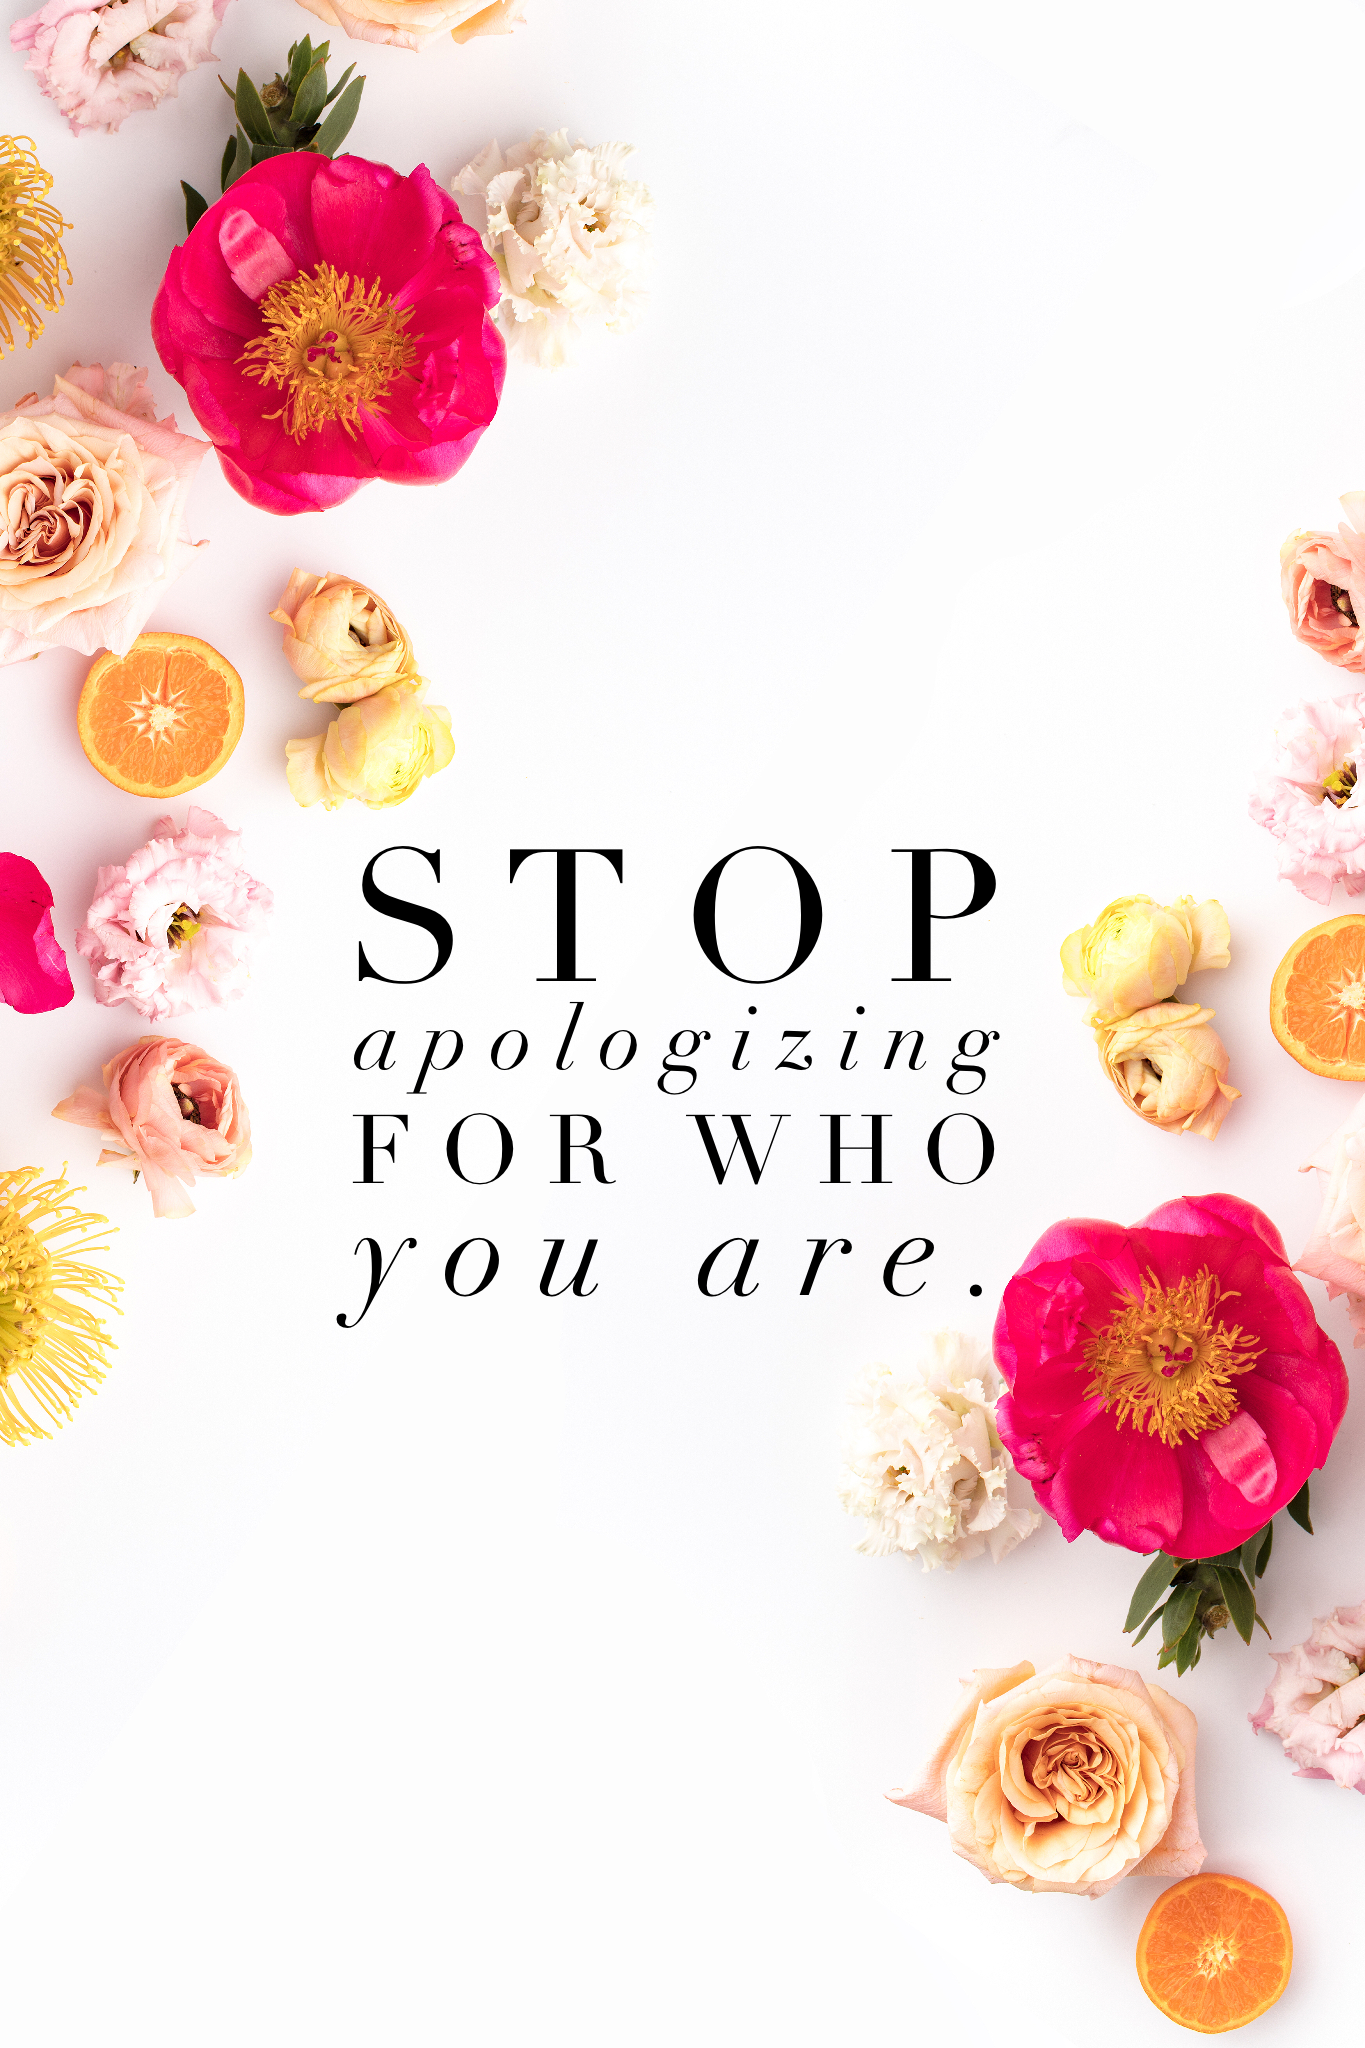 Life Quotes: Stop apologizing for who you are. How to get more followers on social media and why you should be authentic to your true self.